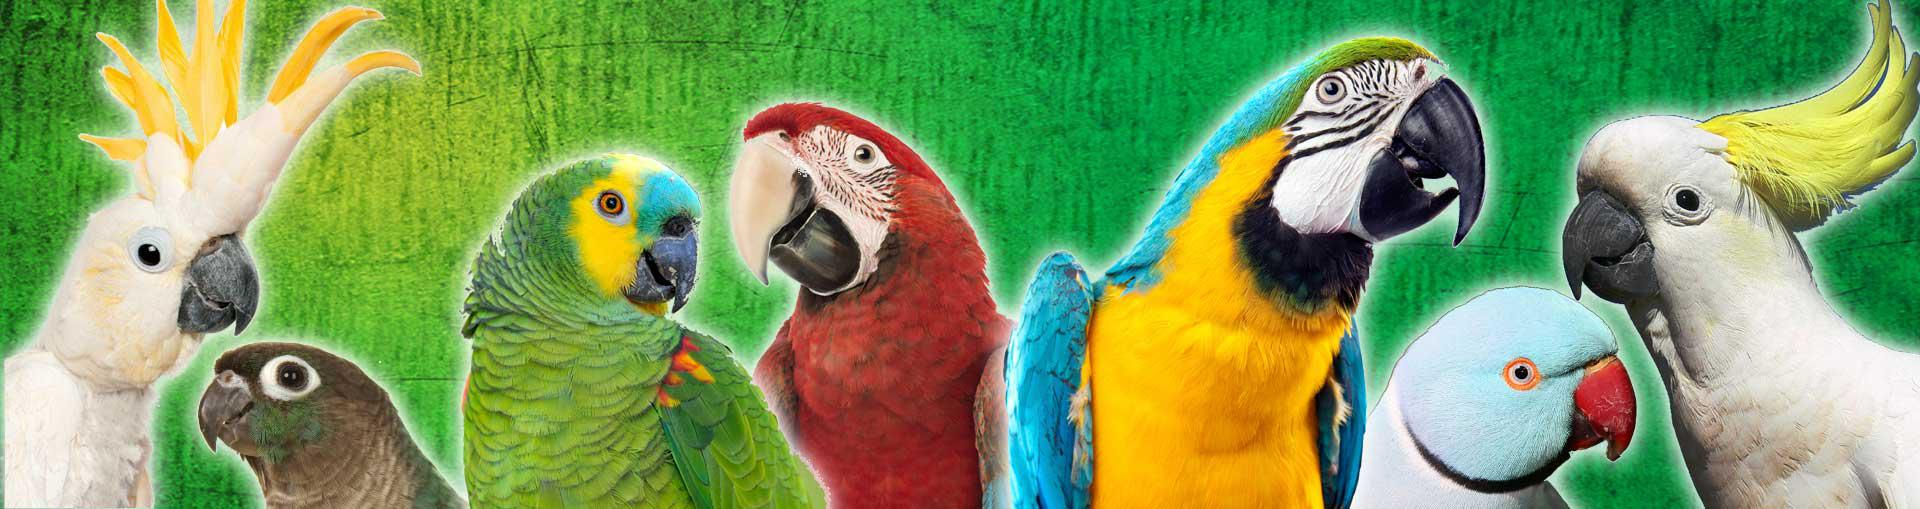 Macaws and Parrots Store image 0